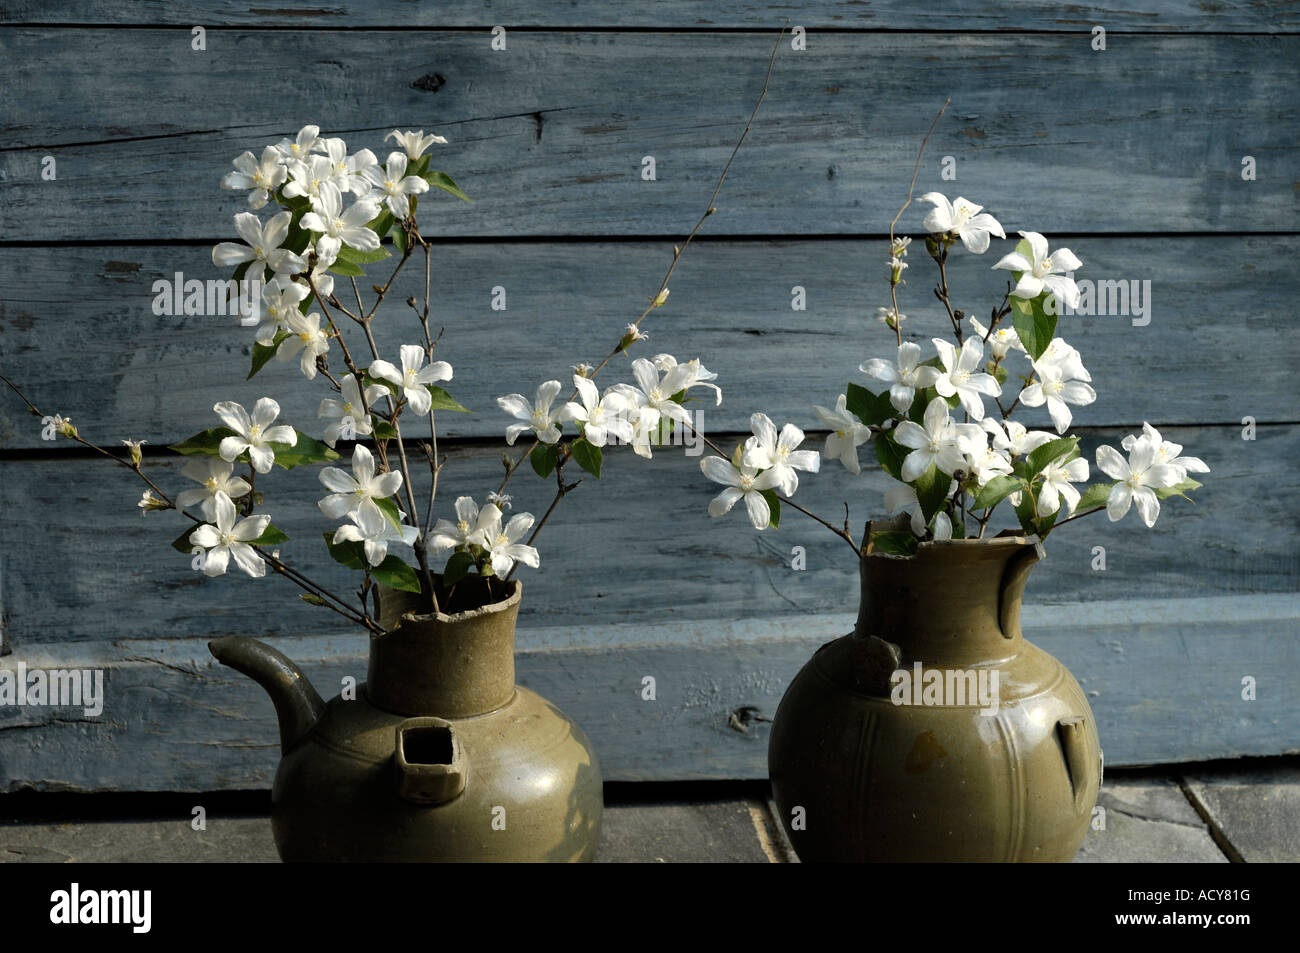 flower arrangement in two Chinese ancient pots - Stock Image